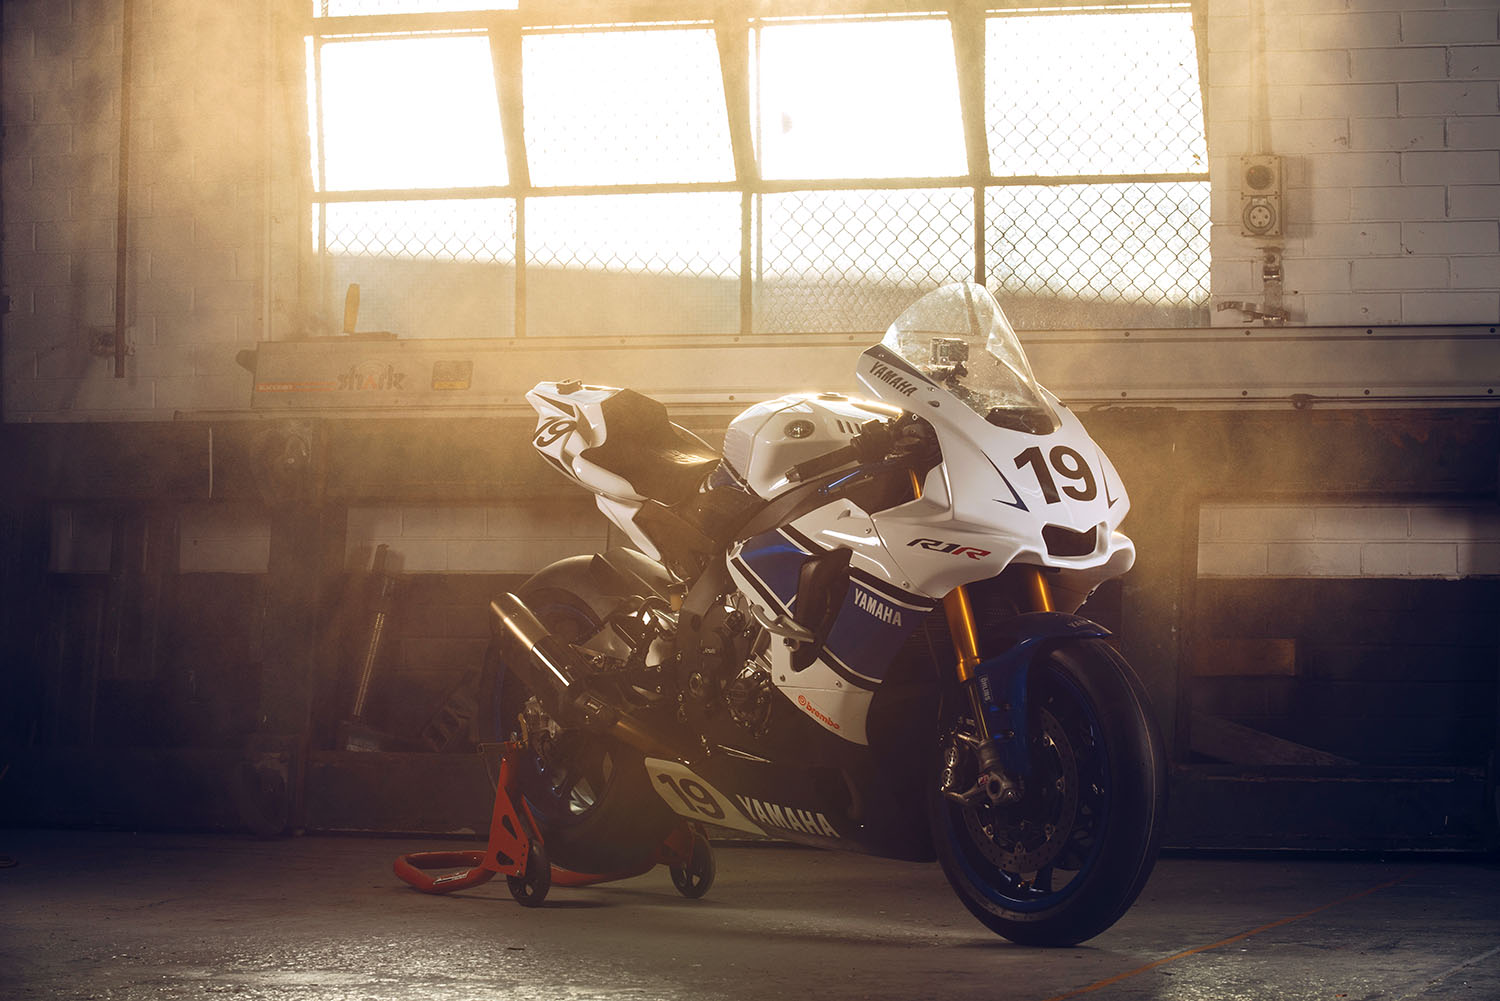 r1_private_photoshoot.jpg